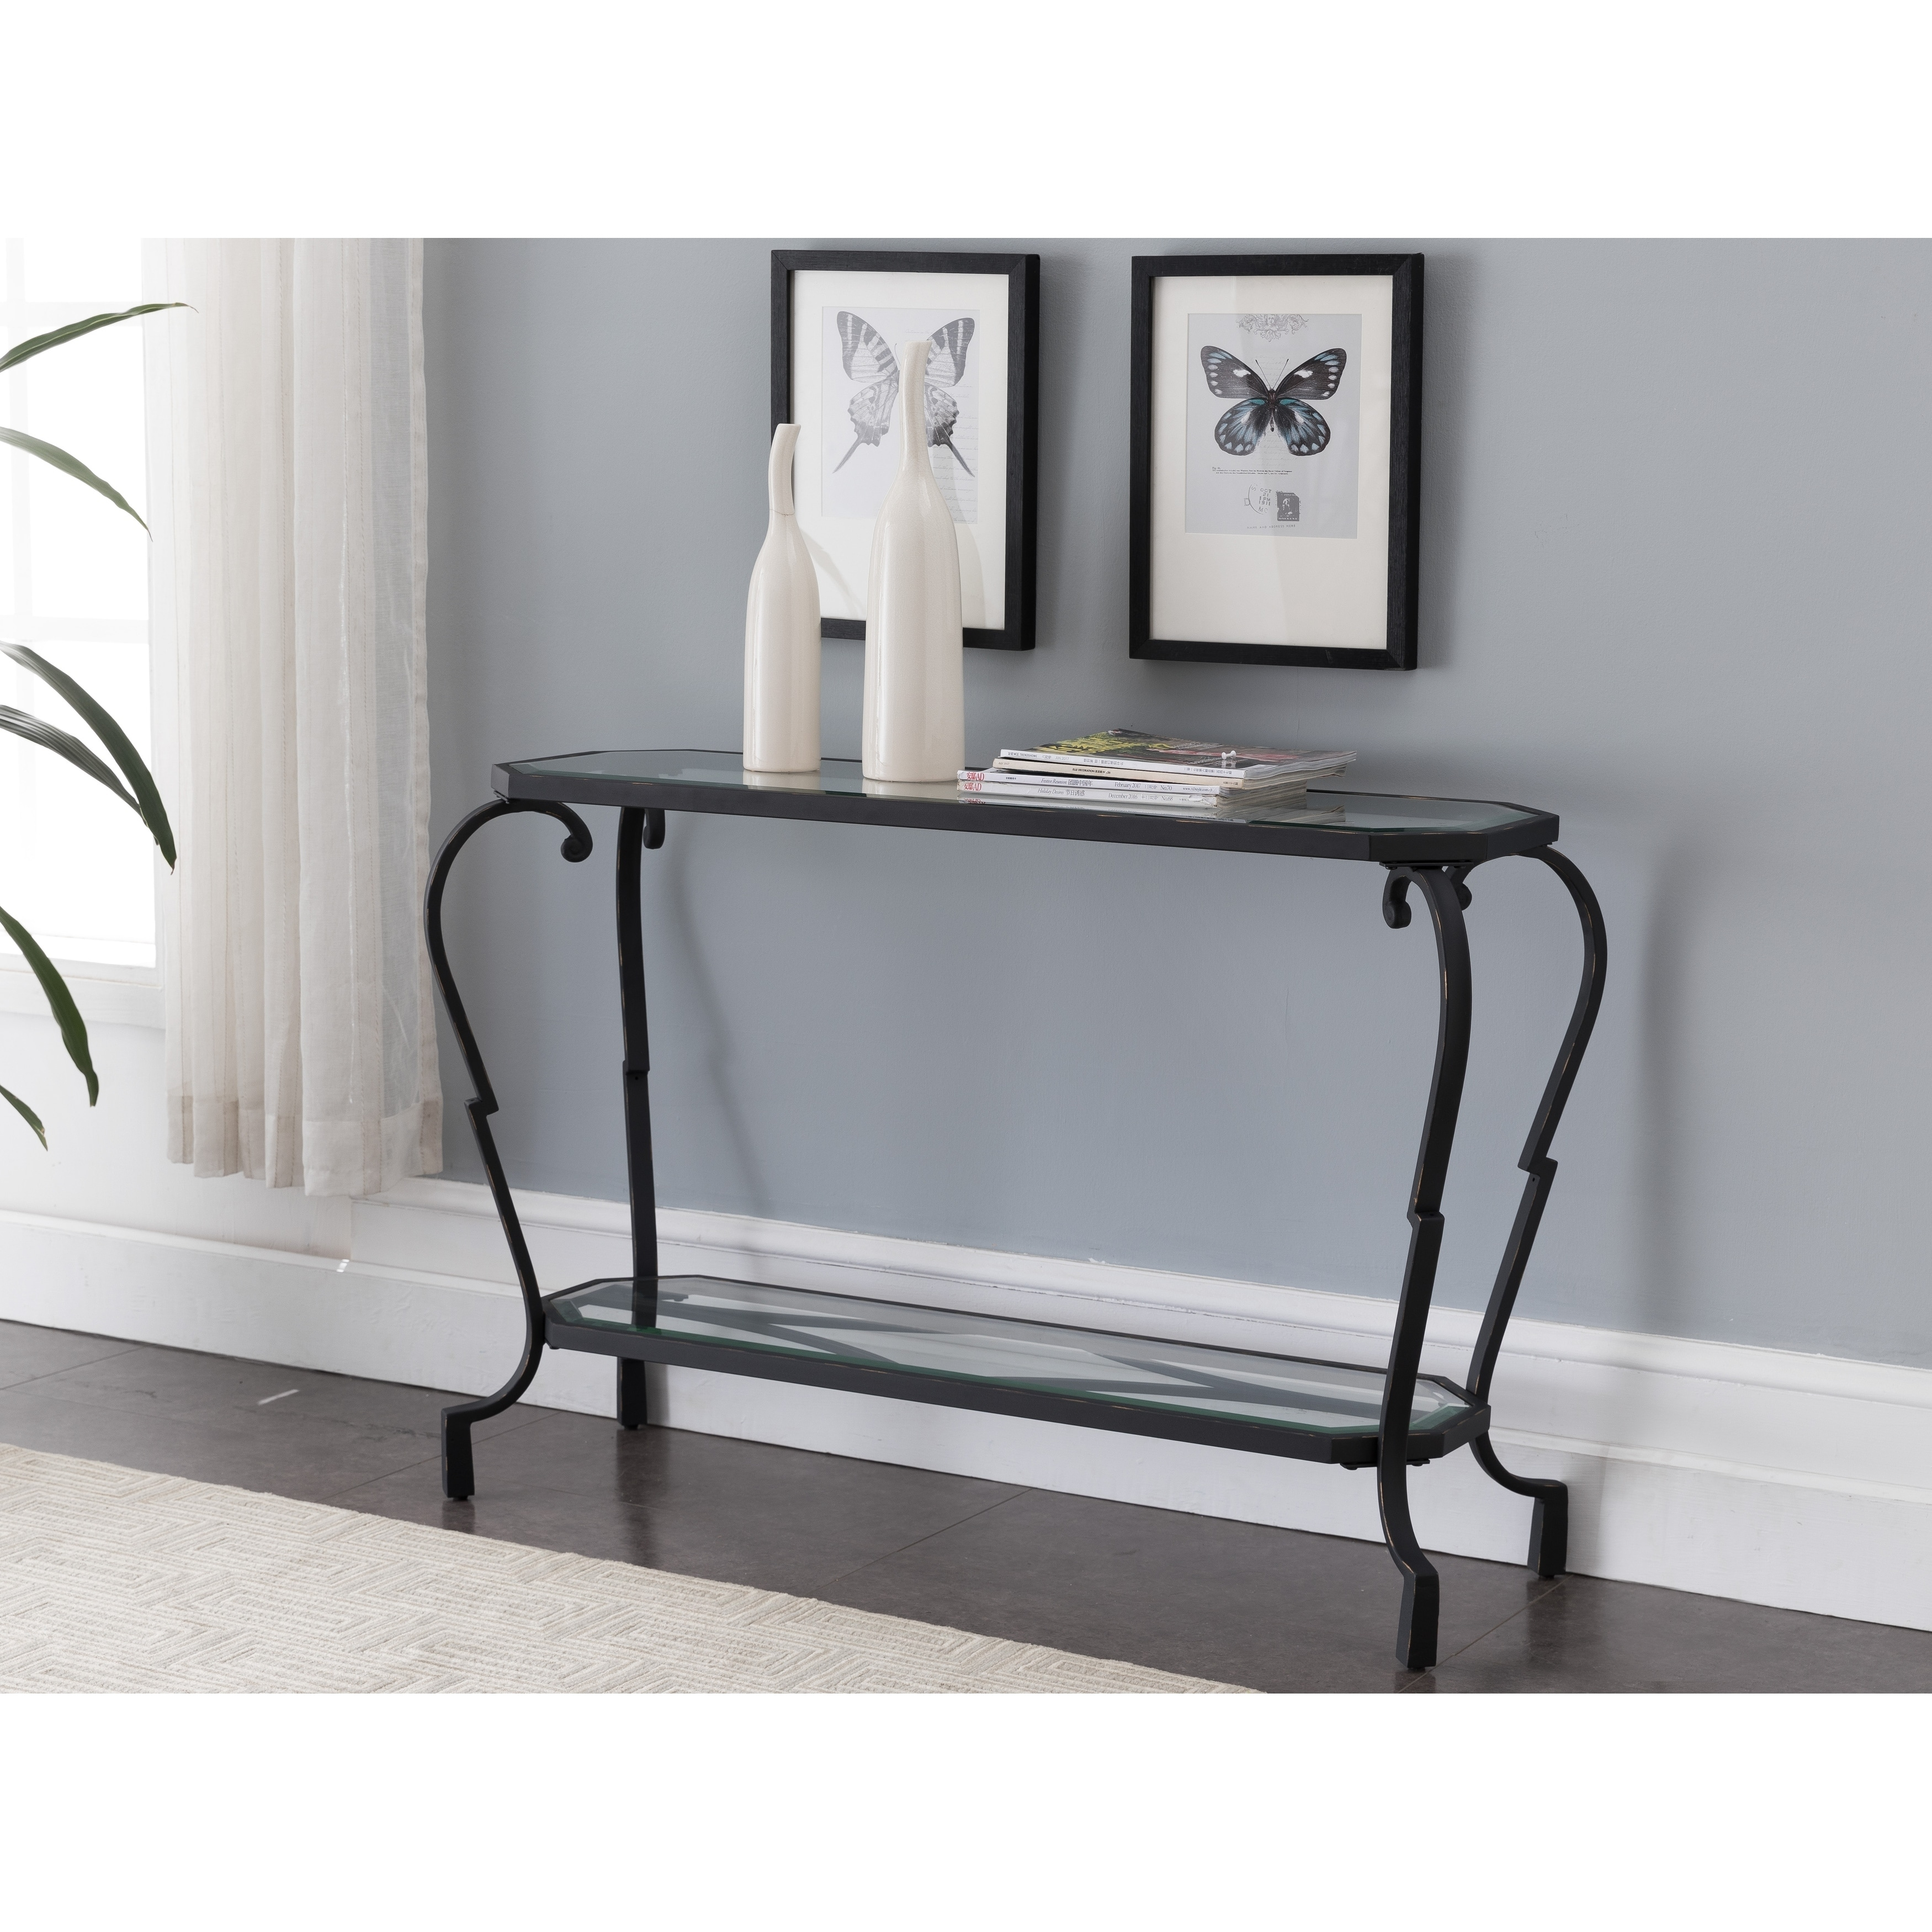 Shop Black And Brushed Copper Metal Glass Console Table On Sale